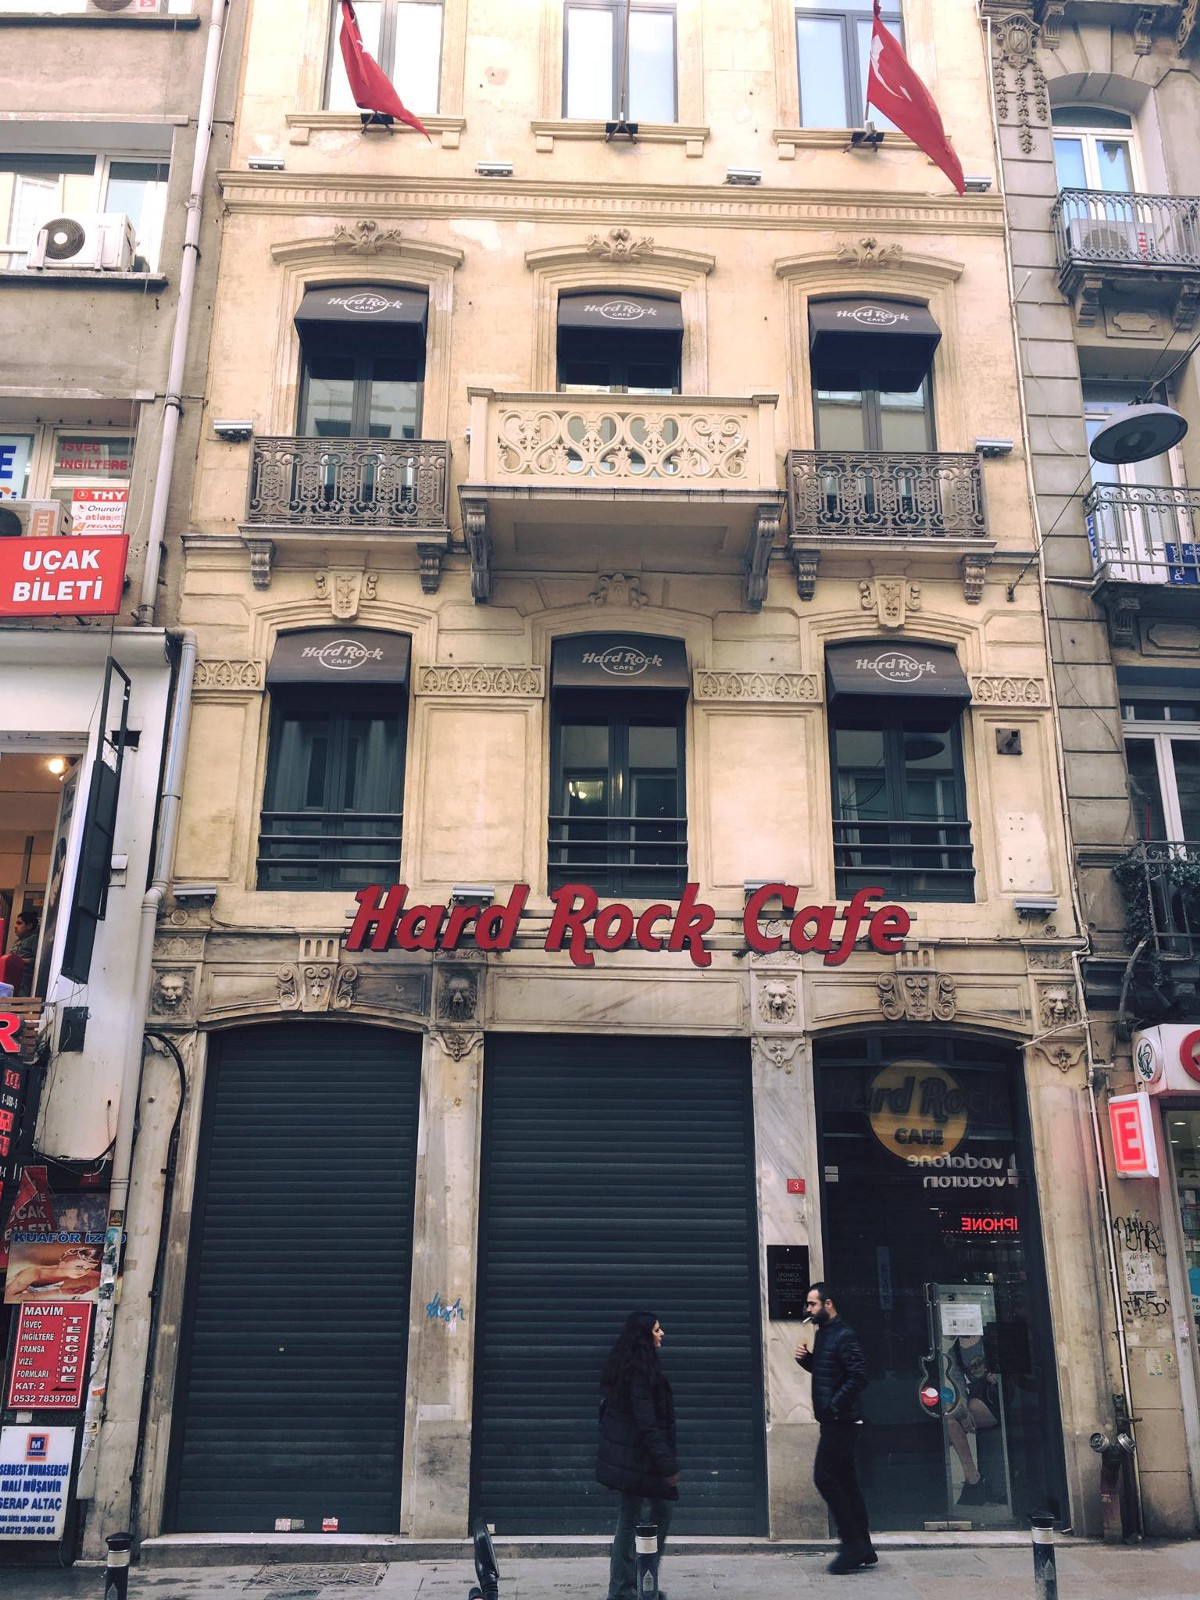 140Journos covers  the multitiude of closings on Istiklal Street in Istanbul as well as the reasons why.